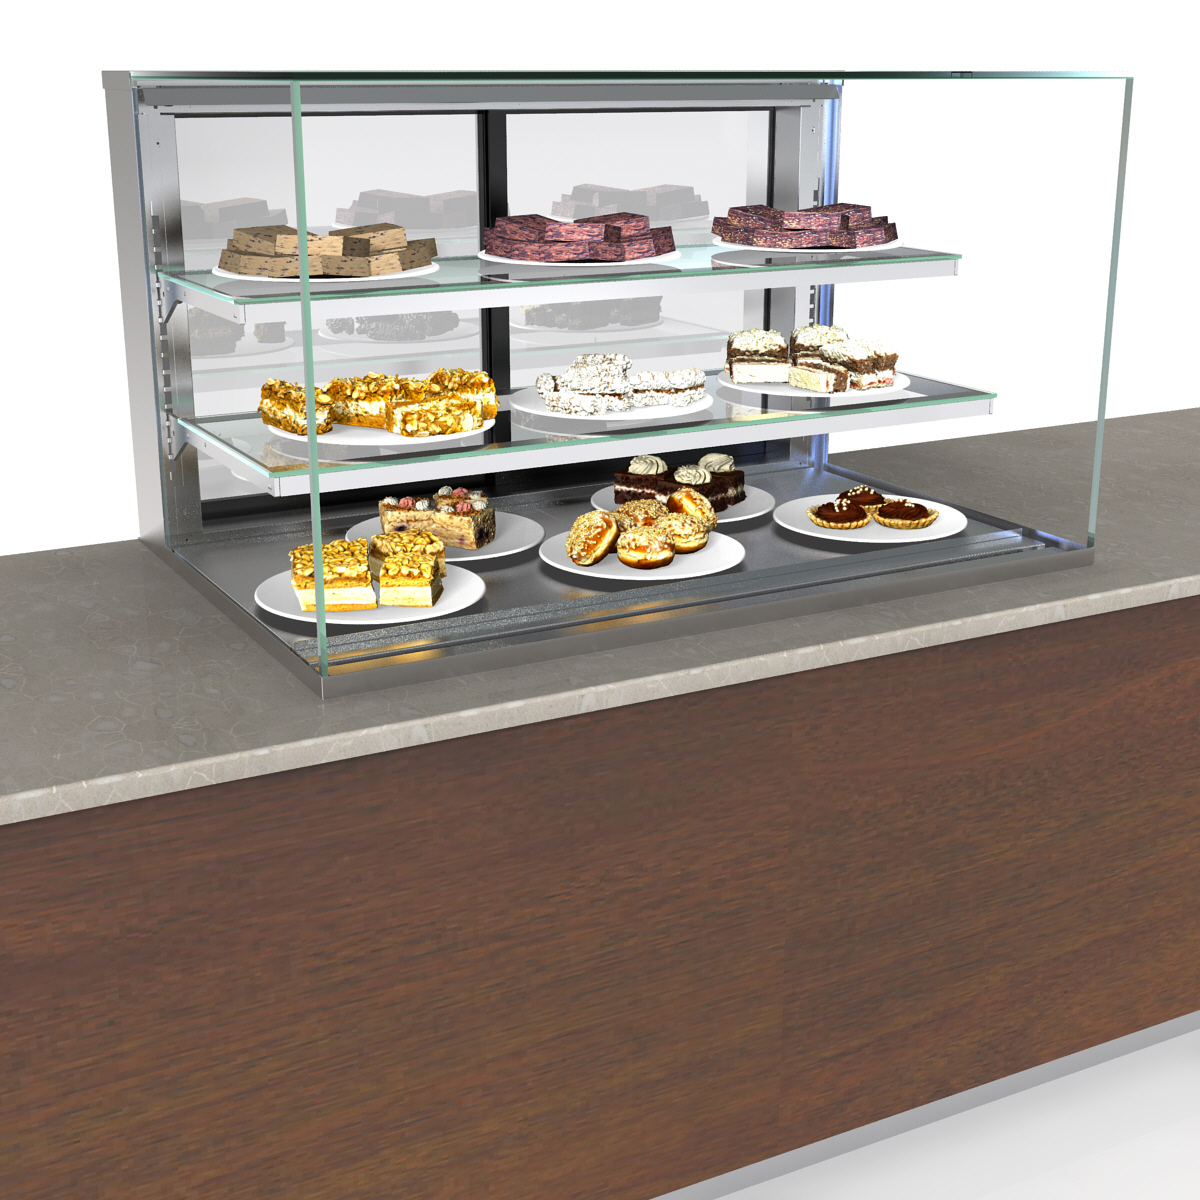 Structural Concepts NE4827DSV display case, non-refrigerated, slide in counter